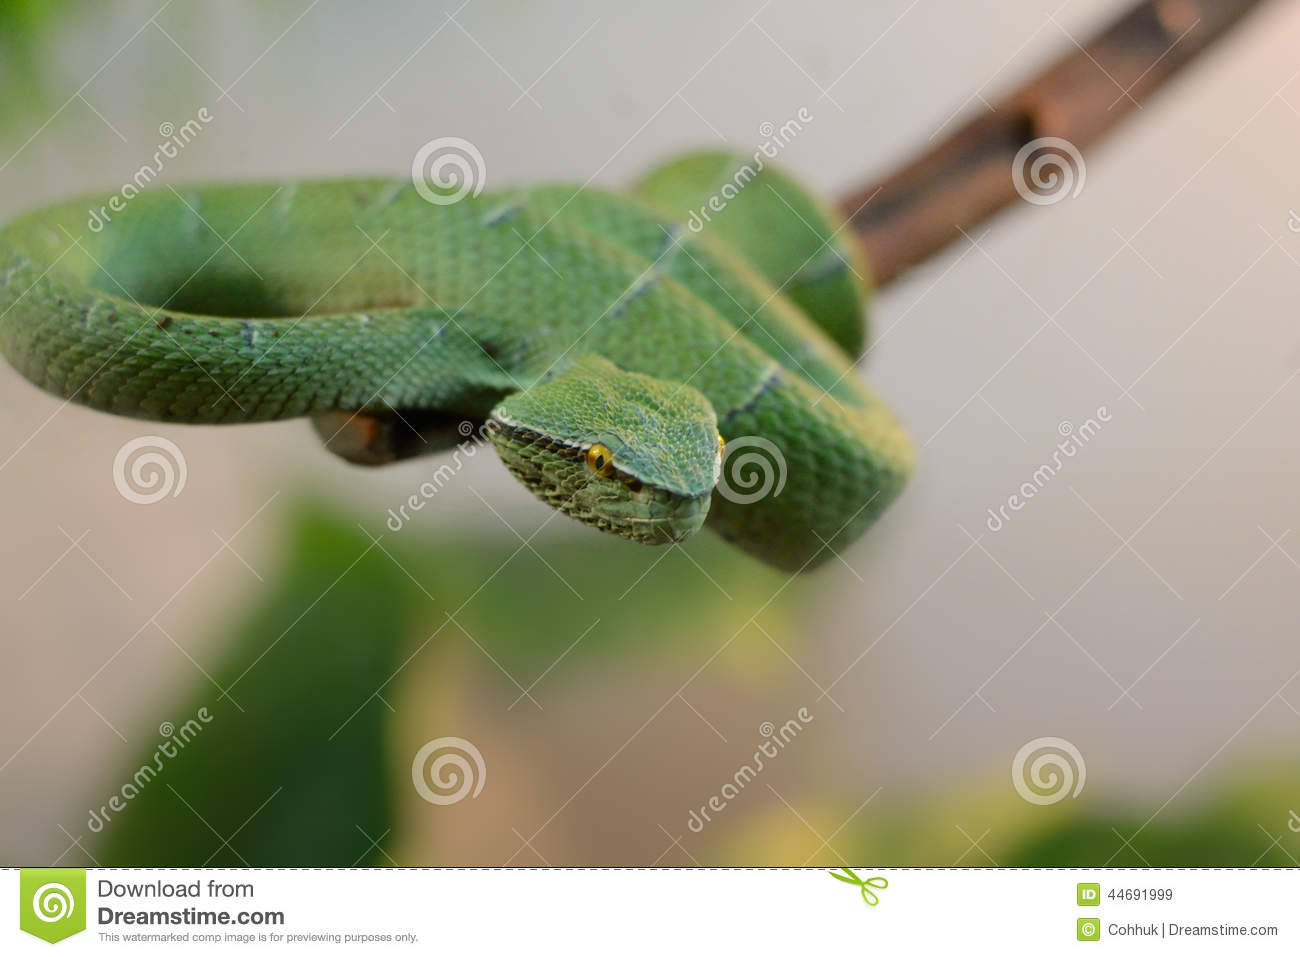 green snakes branches snake - photo #46